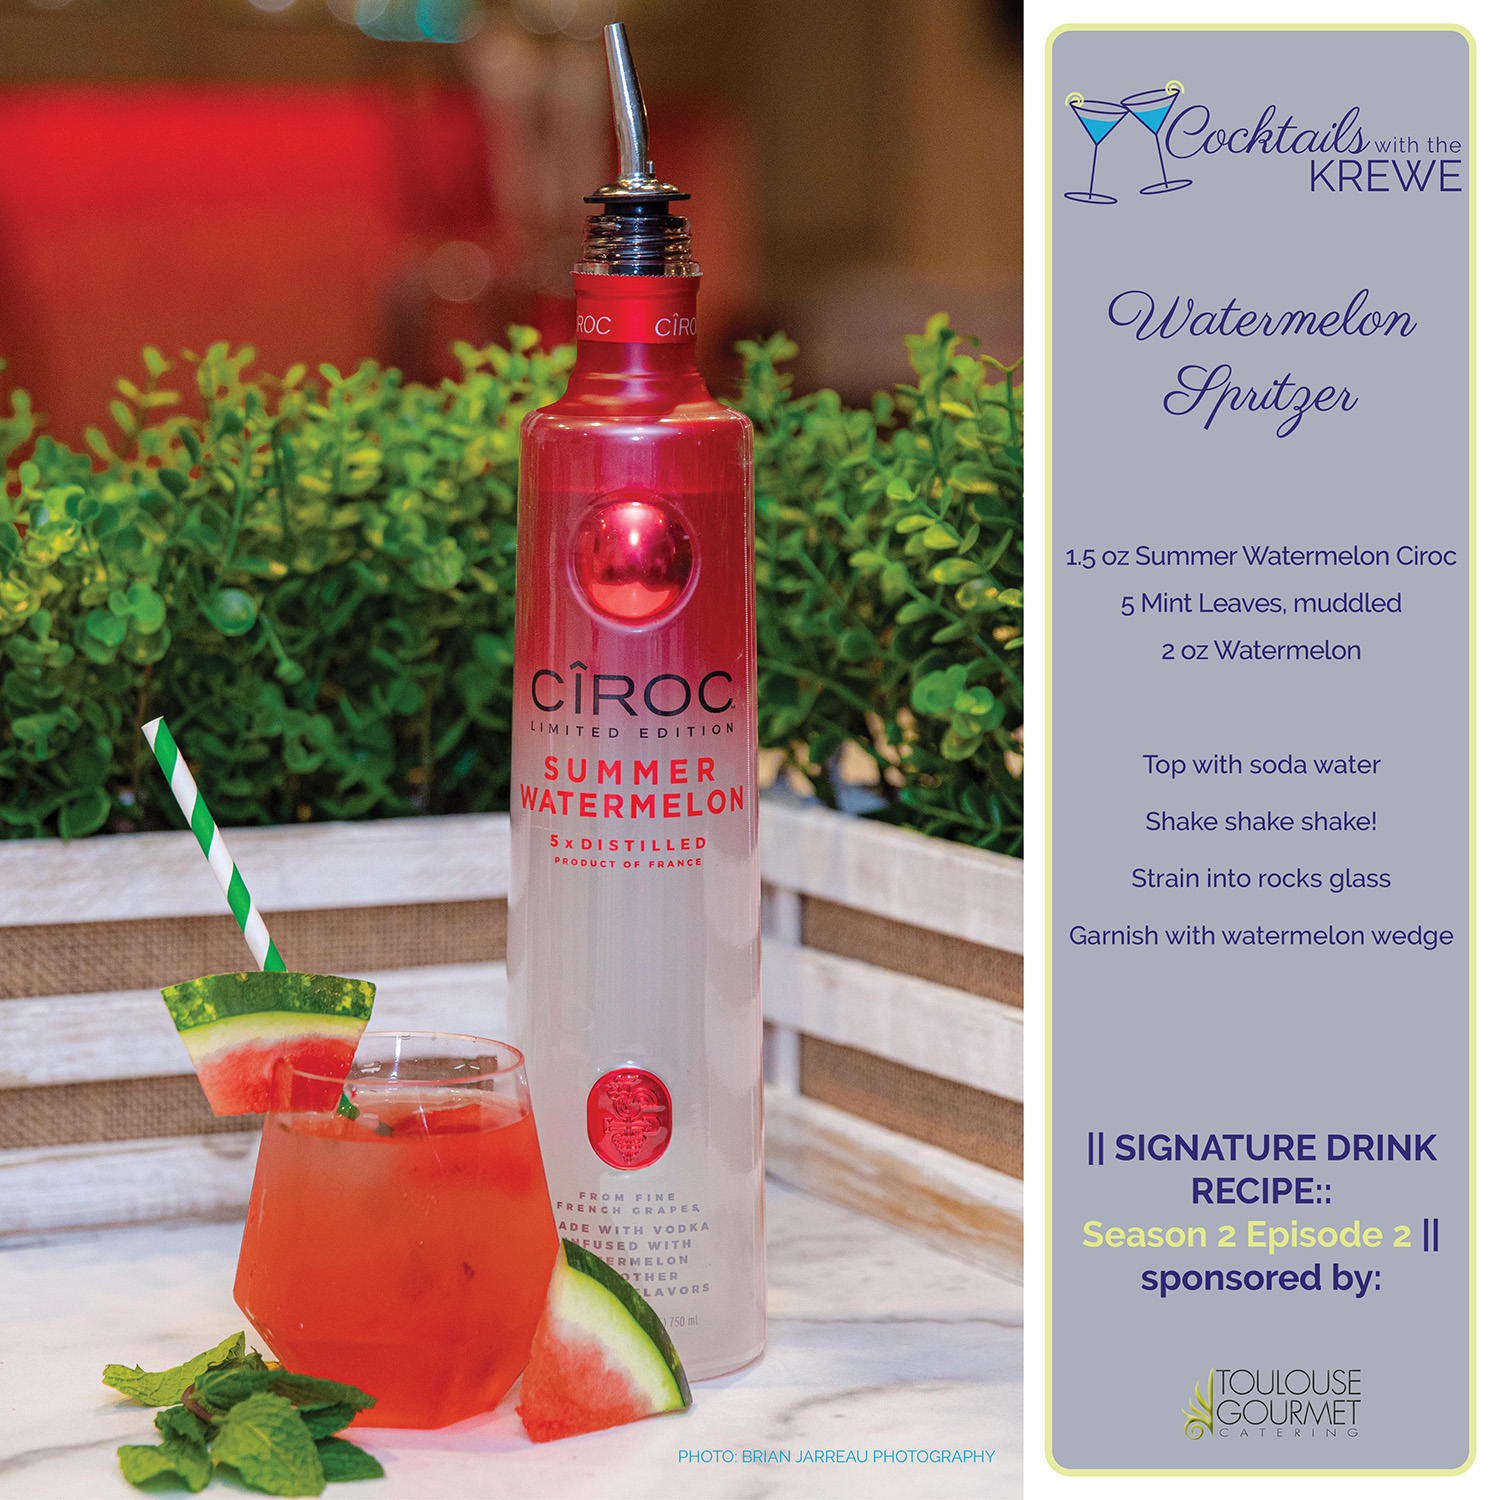 Cocktails with the Krewe Cocktail of the Week Recipe: The Watermelon Spritzer presented by Toulouse Gourmet Catering. 1.5 oz Summer Watermelon Ciroc 5 Mint Leaves, muddled 2 oz Watermelon Top with soda water Shake shake shake! Strain into rocks glass Garnish with watermelon wedge Photo by Brian Jarreau Photography